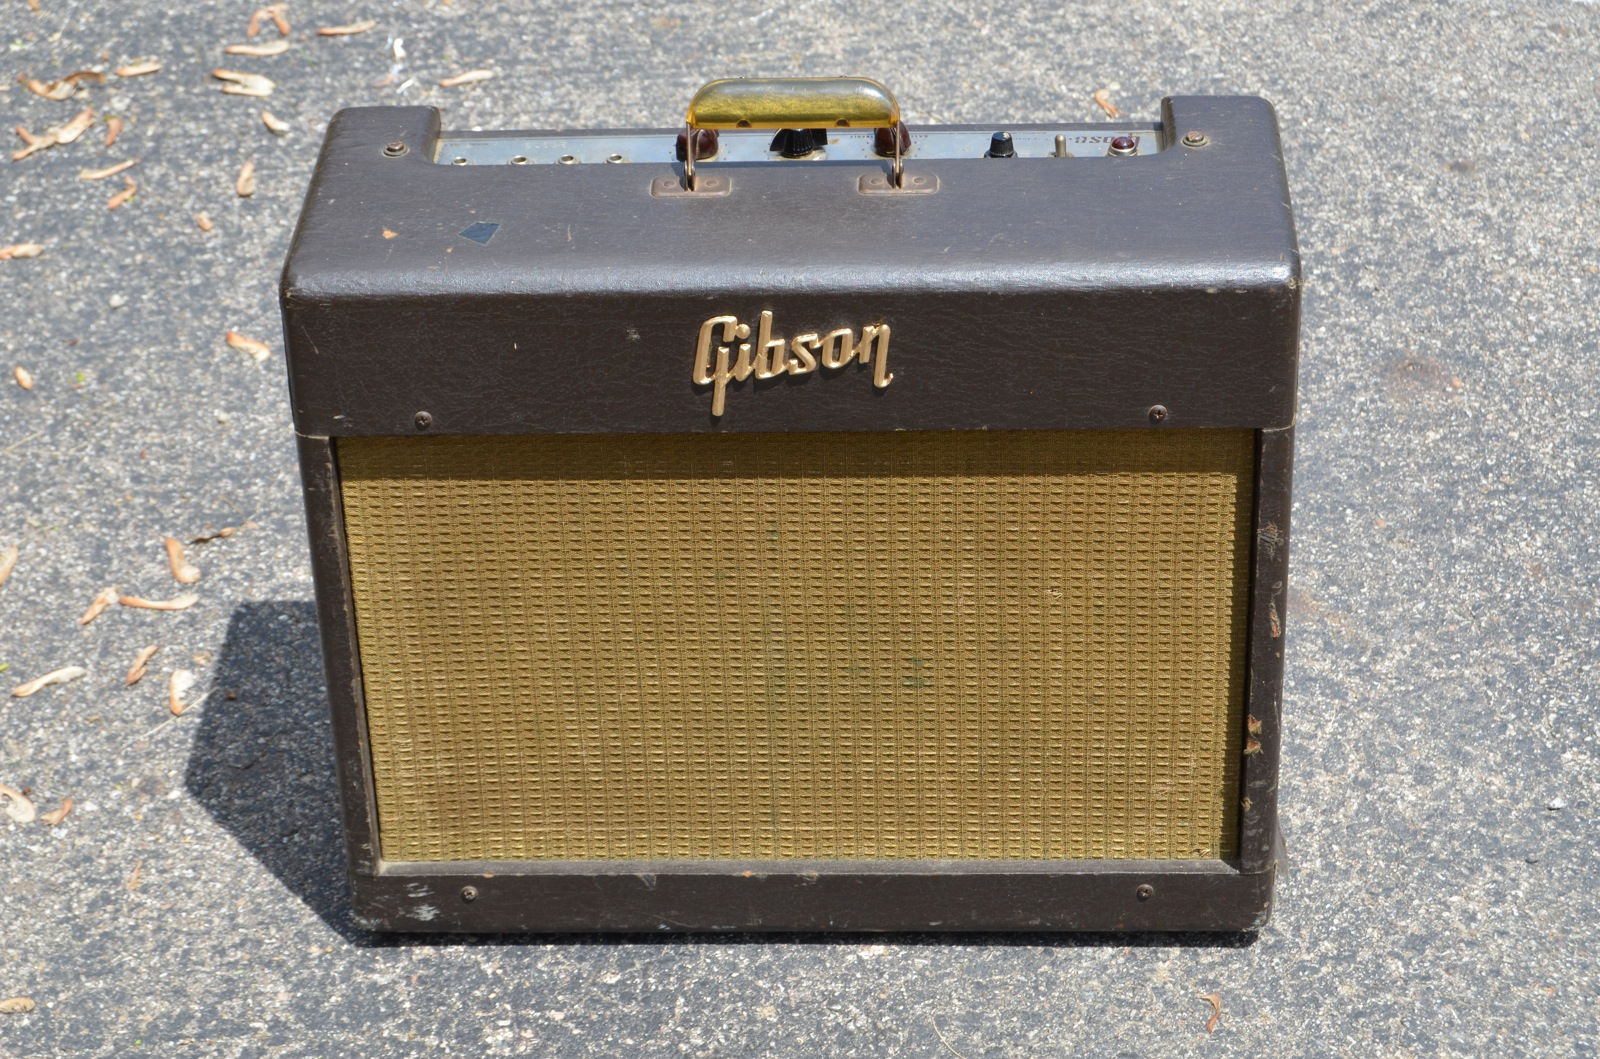 1957 gibson ga 6 brown amps preamps dayton vintage guitars and amps. Black Bedroom Furniture Sets. Home Design Ideas